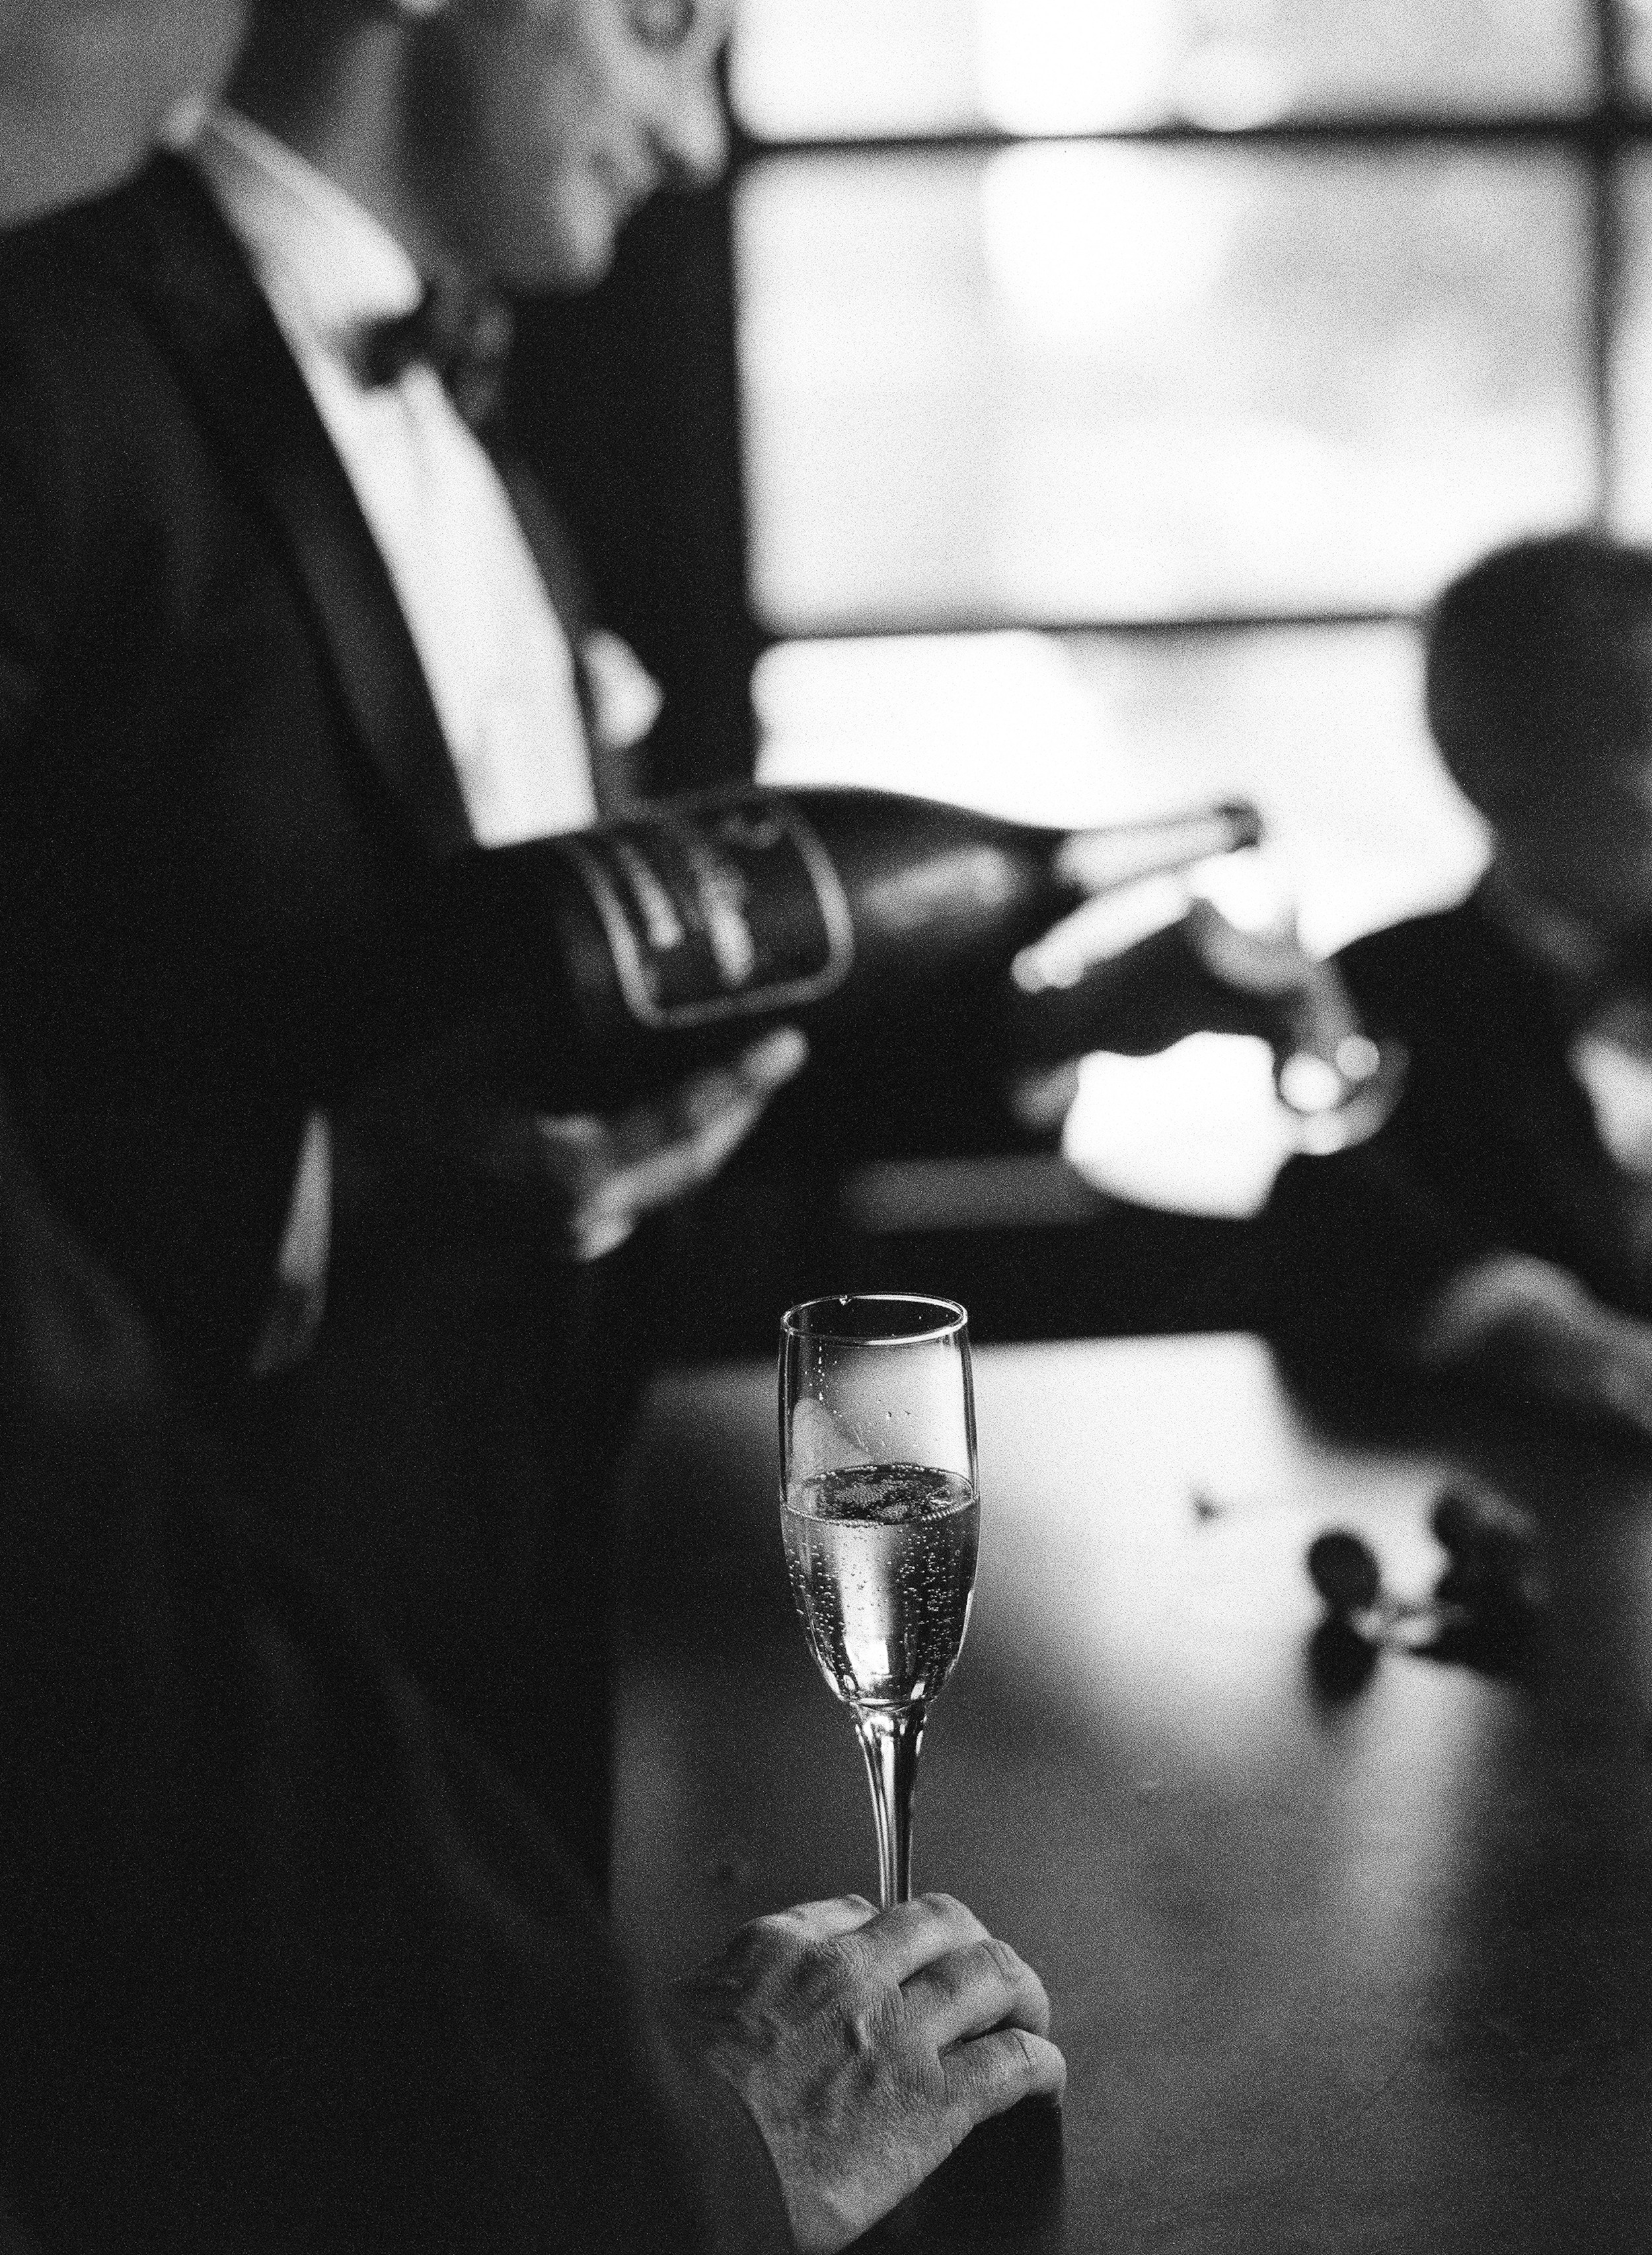 Destination Wedding Photographer Lexia Frank is a film photographer on the west coast specializing in luxury weddings and fine art film photography. In this article she writes a letter to the groom, and talks about the groom's role in photography. a groom pours a glass a champagne at the Iron Horse Inn in Milwaukee Wisconsin before his wedding at the Villa Terrace Milwaukee Wisconsin.www.lexiafrank.com